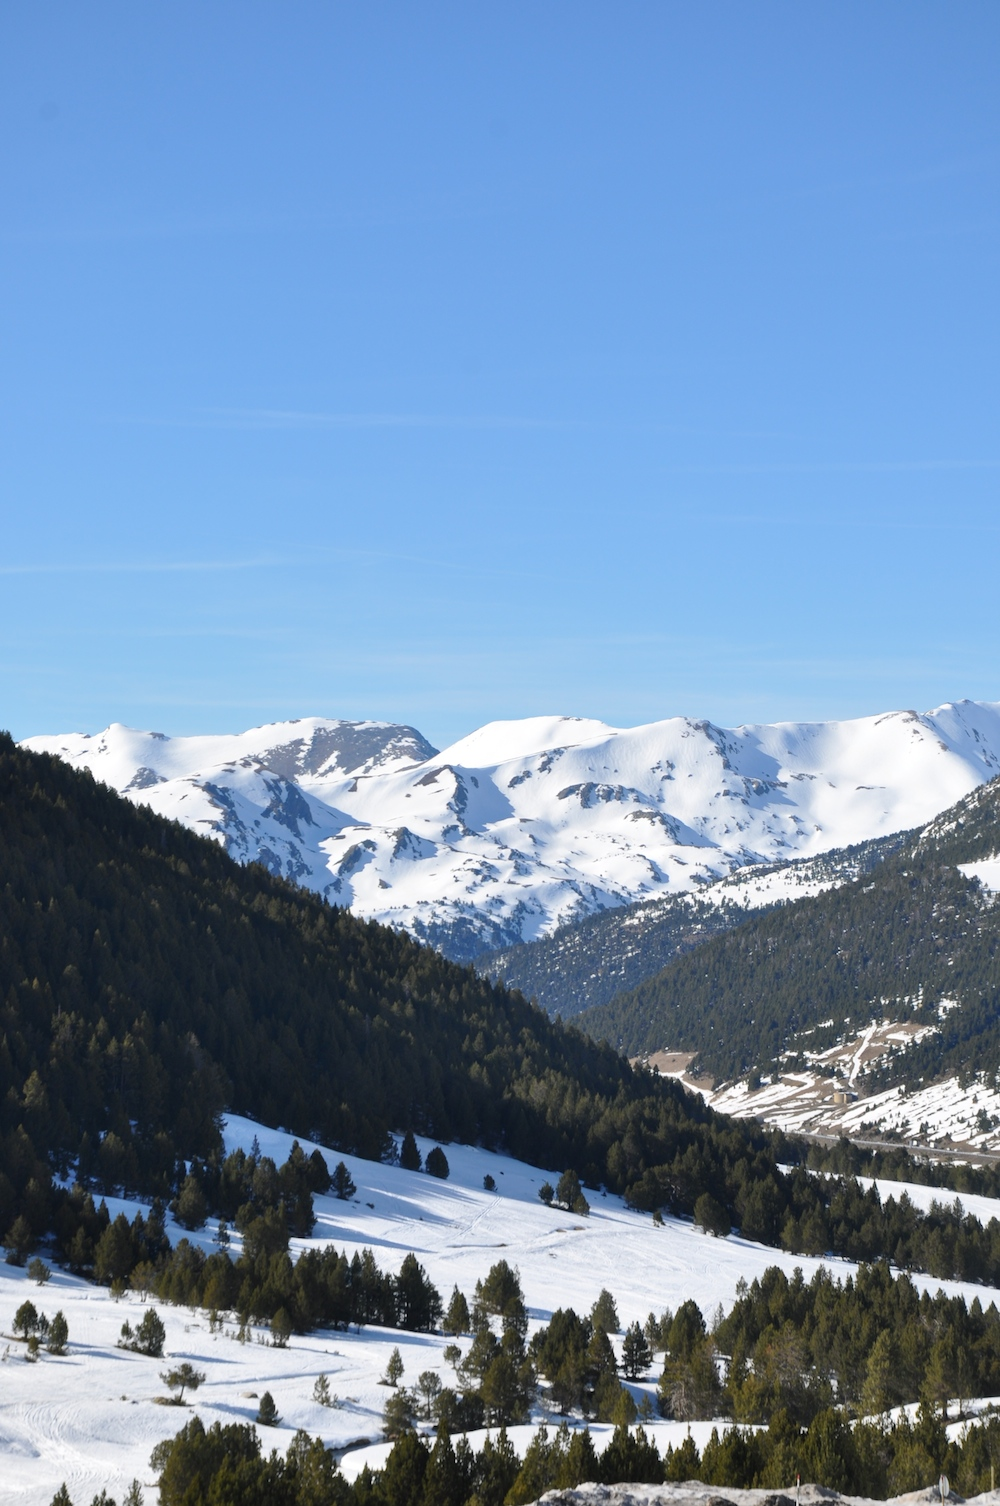 Andorra_grau_roig_snow_mountains